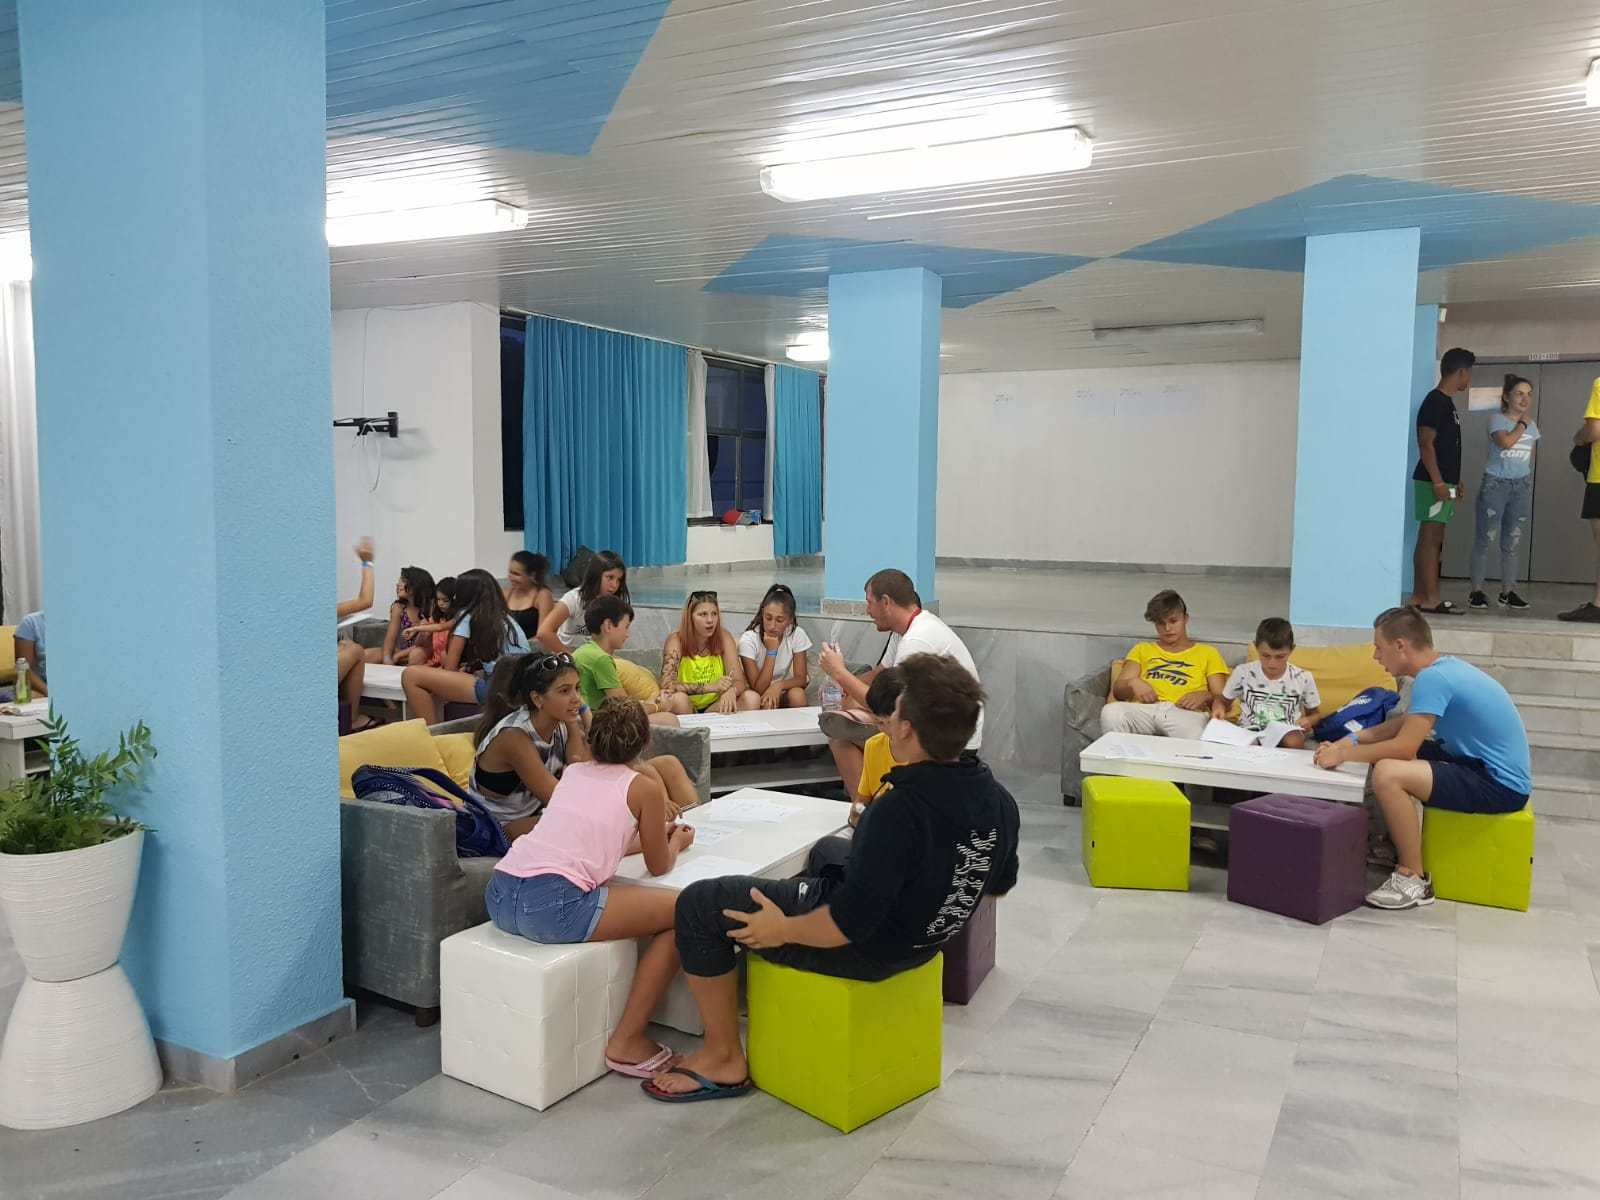 Z camp, day 7 - teams of children discuss the game in the lobby